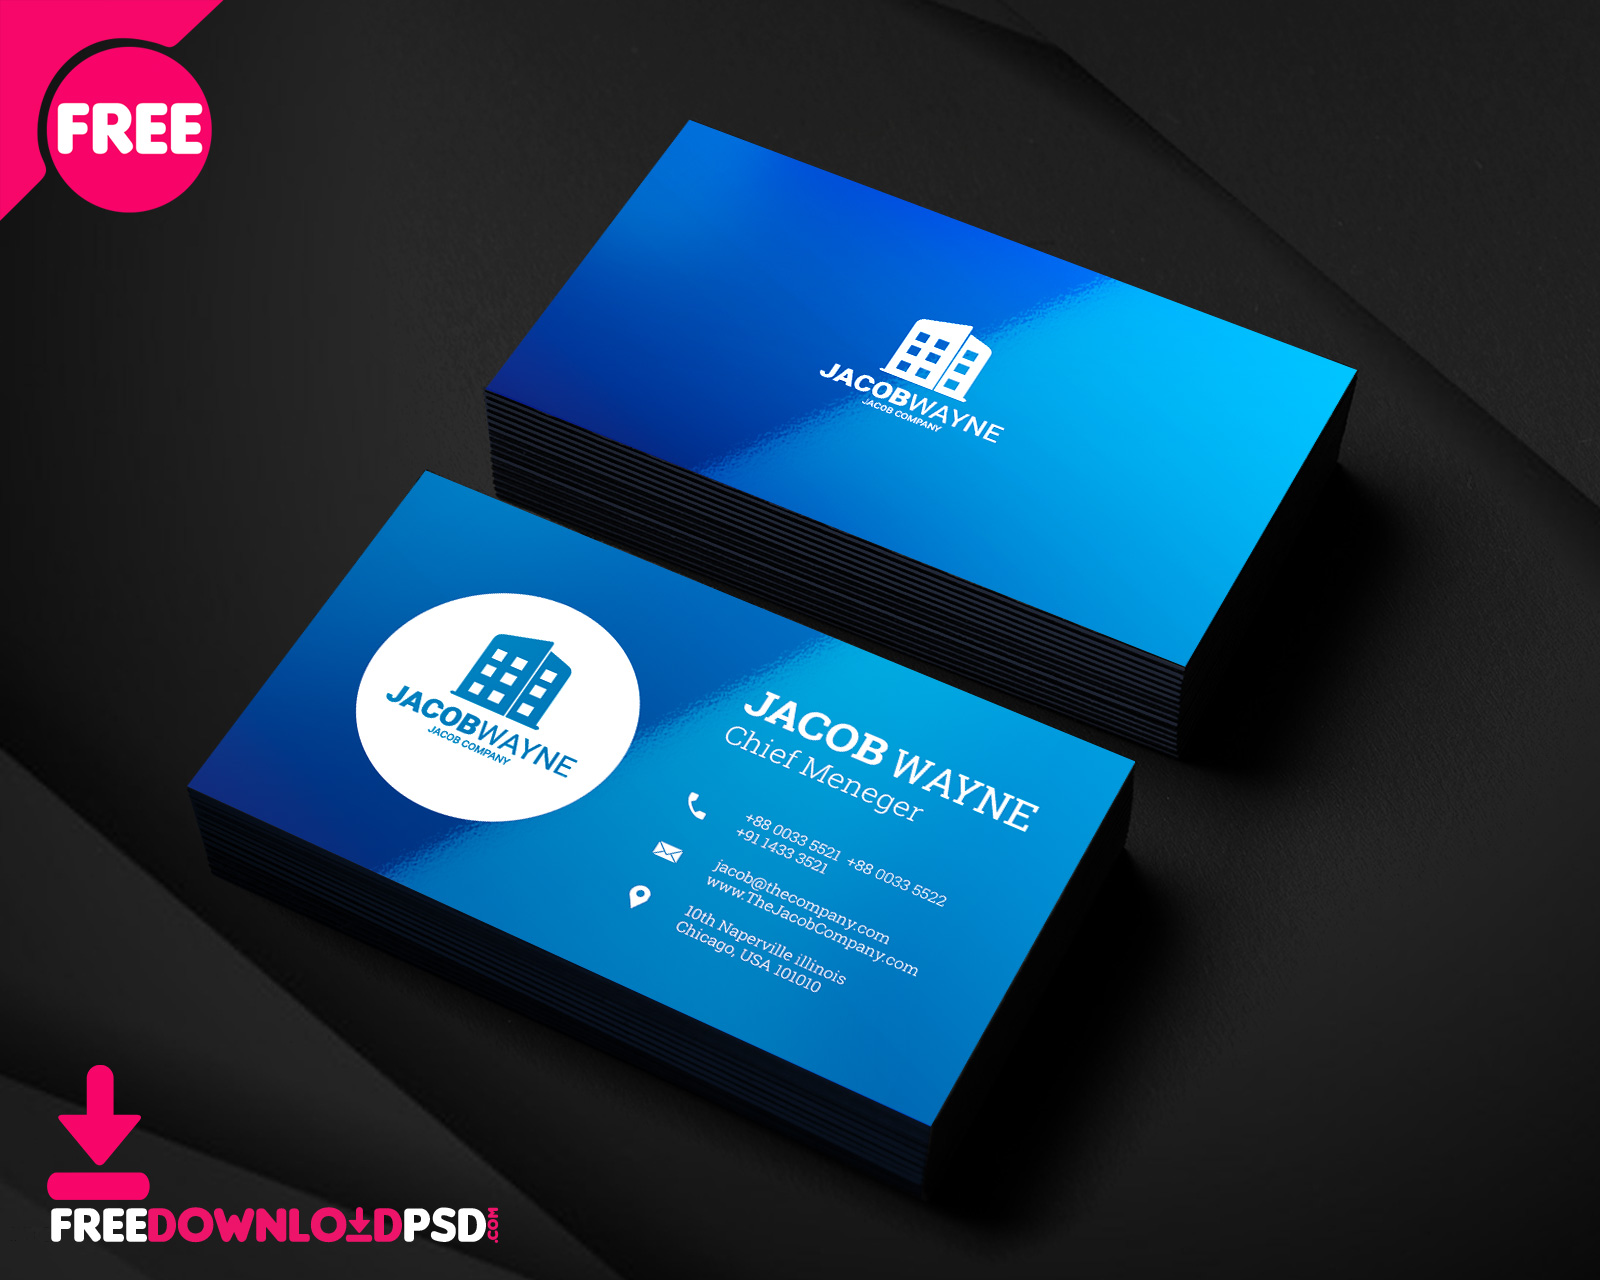 Real Estate Business Card PSD FreedownloadPSDcom - Business card templates psd free download